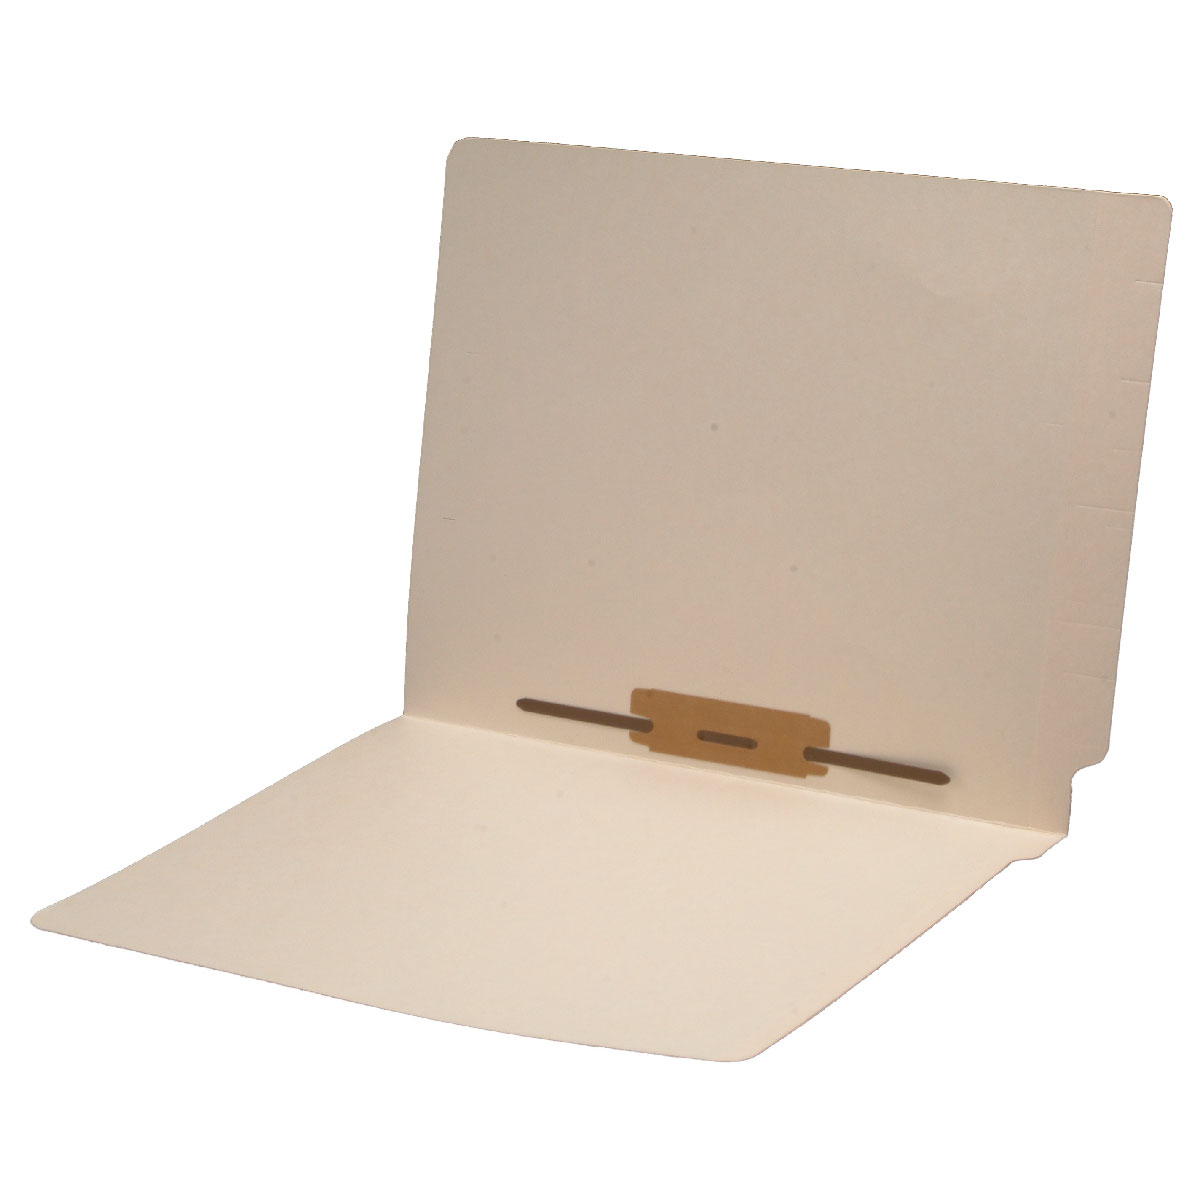 S-9120 - 14 pt Manila Folders, Full Cut 2-Ply End Tab, Letter Size, Fastener Pos #5 (Box of 50)